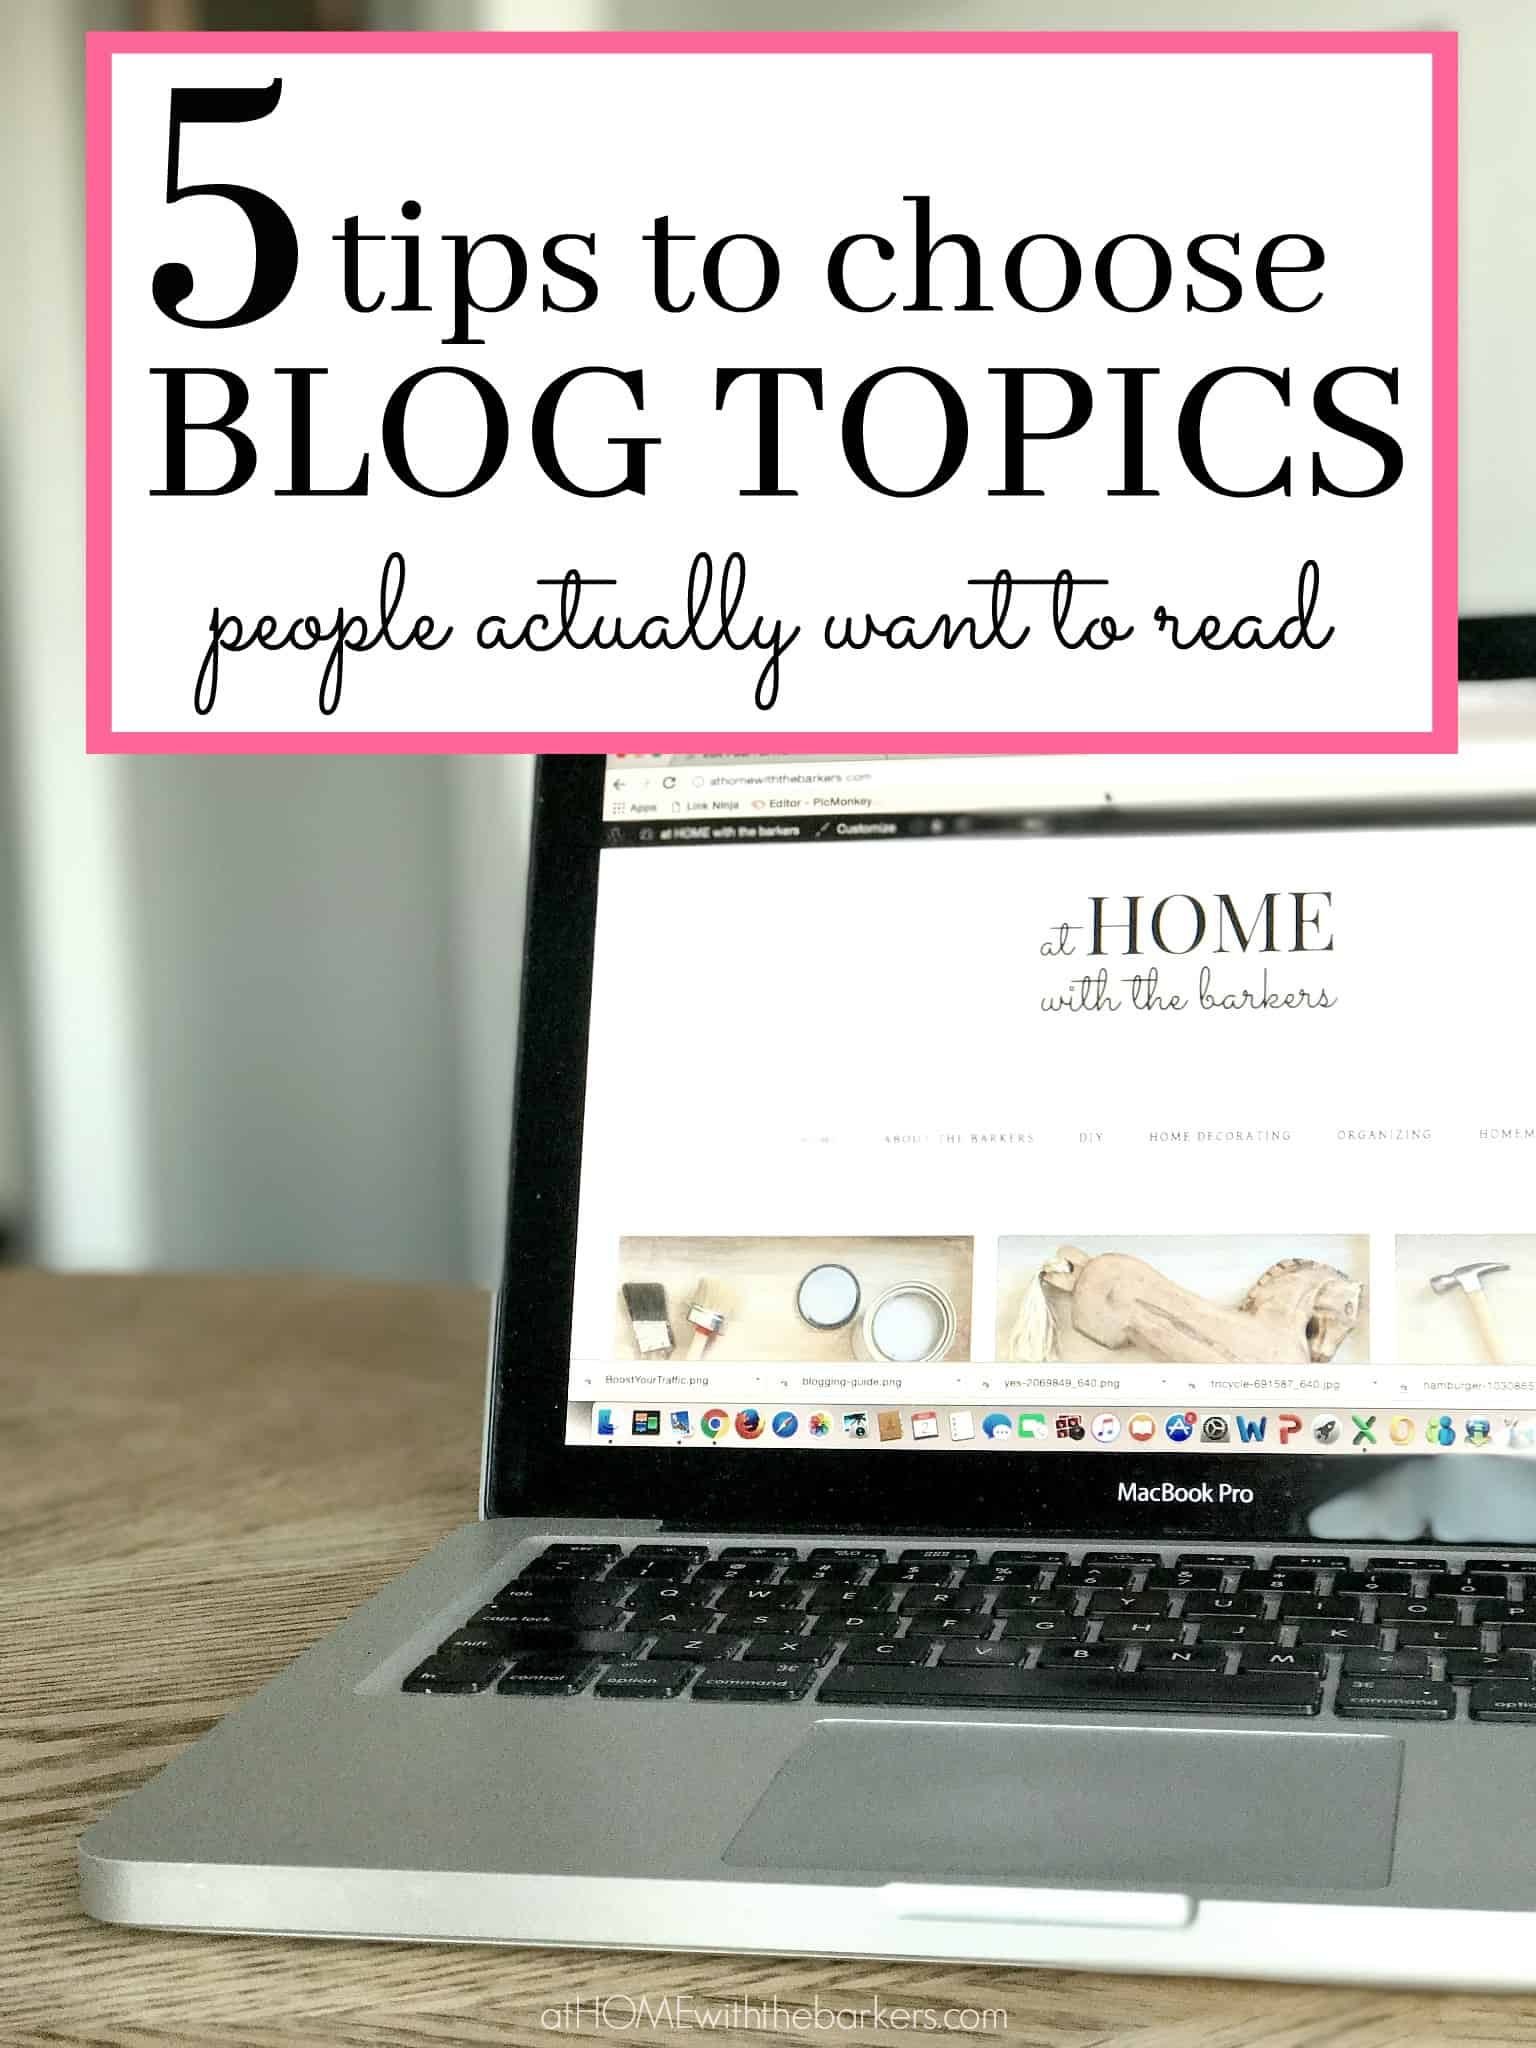 5 Tips to Choose Blog Topics People Actually Want to Read